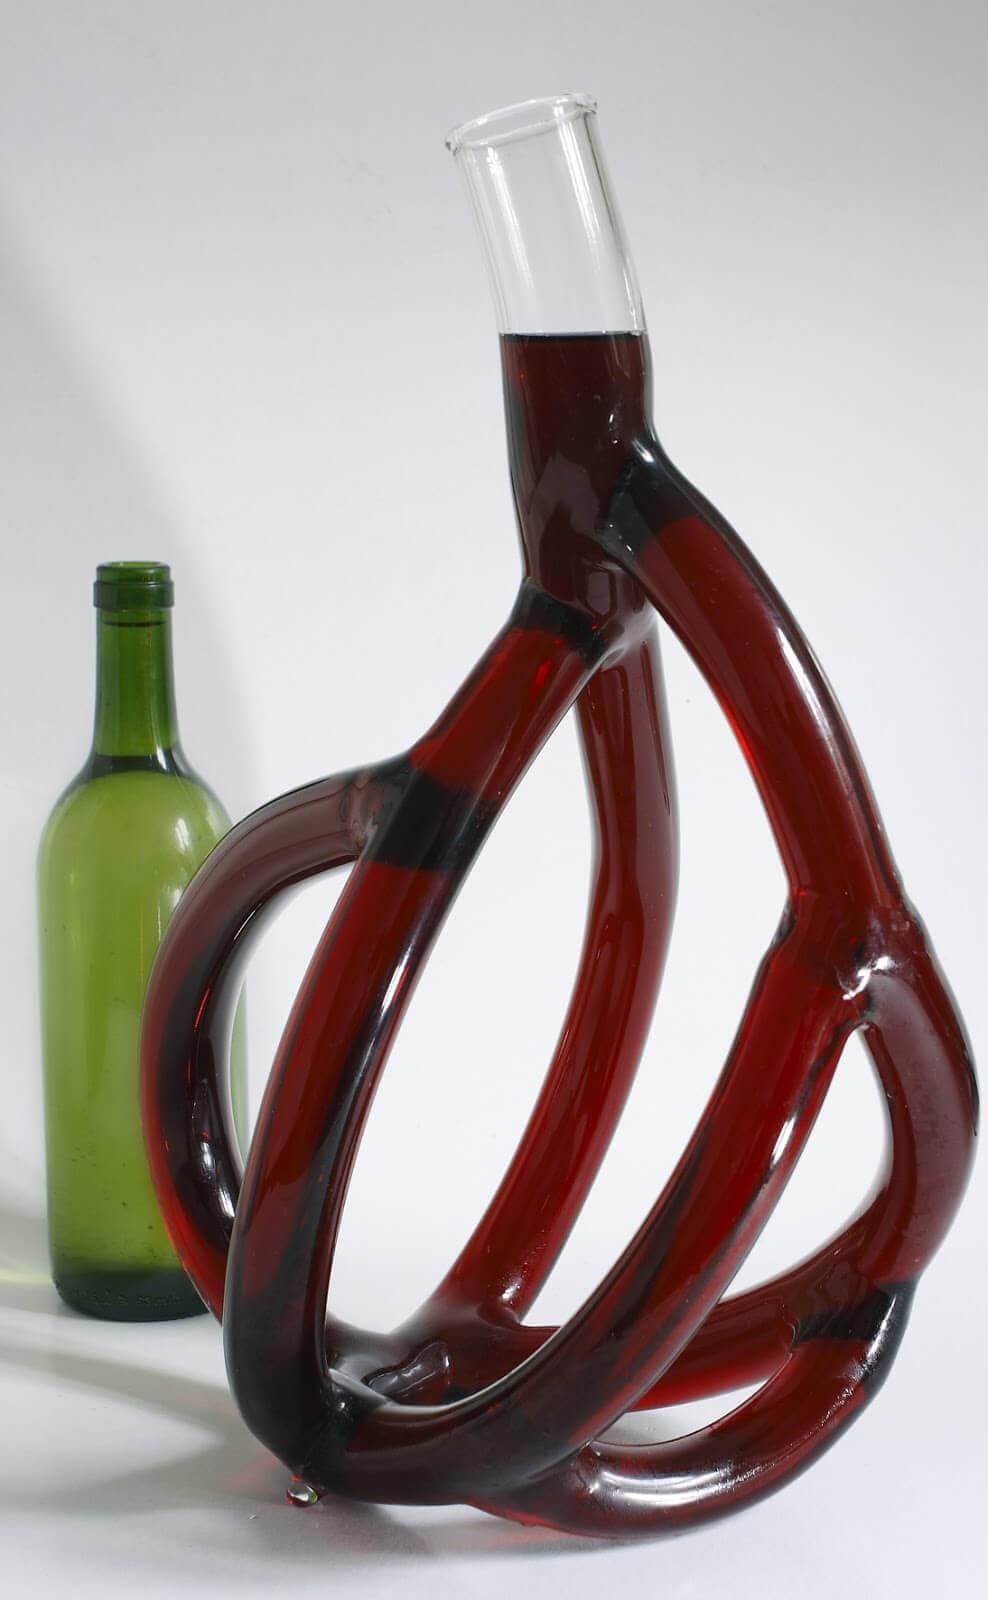 Hand-Blown Glass Wine Decanters by Etienne Meneau -wine, sculpture, glass, anatomy